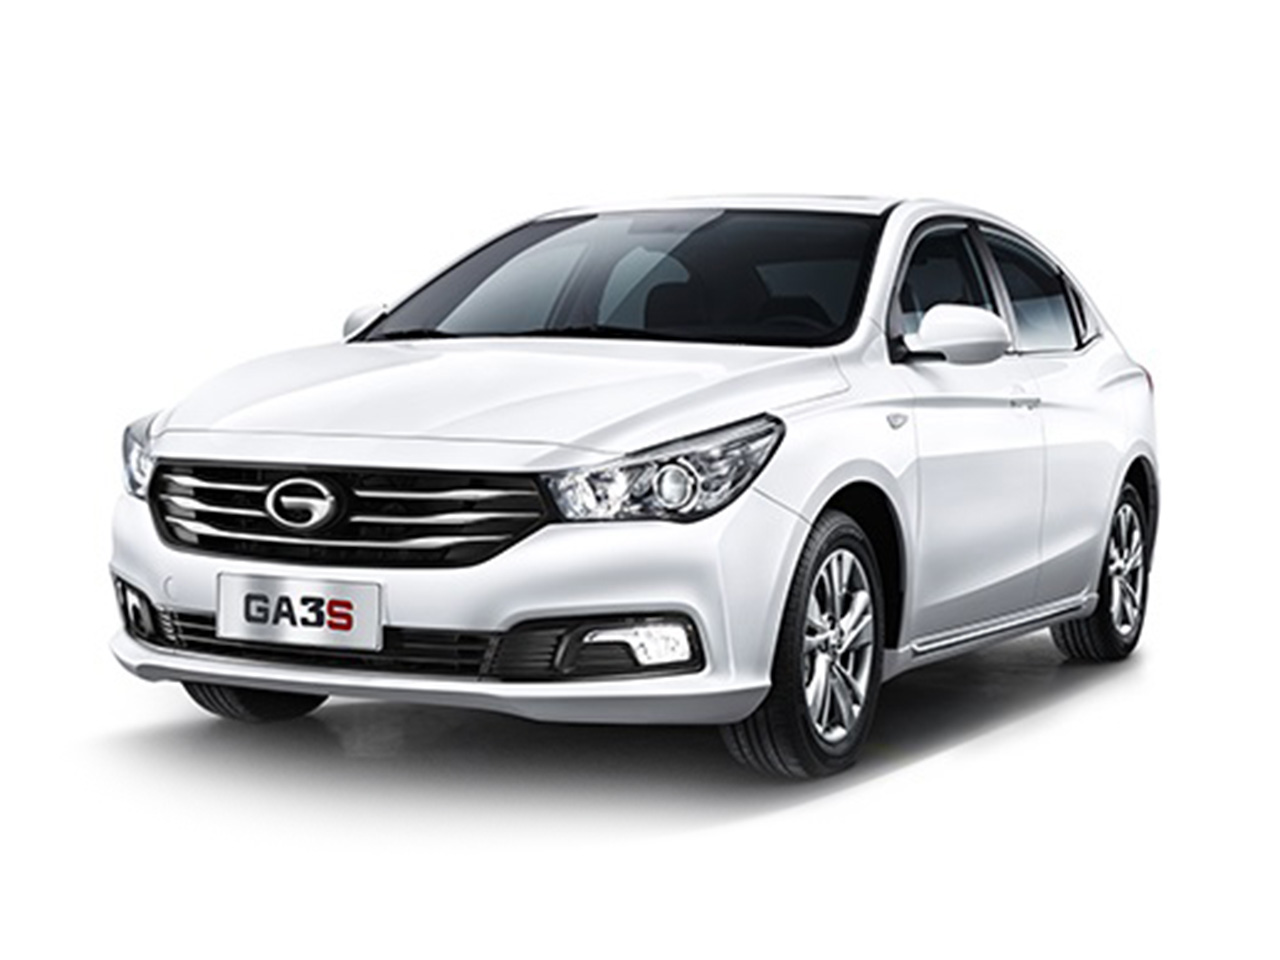 2018 GAC GA3 Prices in Bahrain, Gulf Specs & Reviews for ...